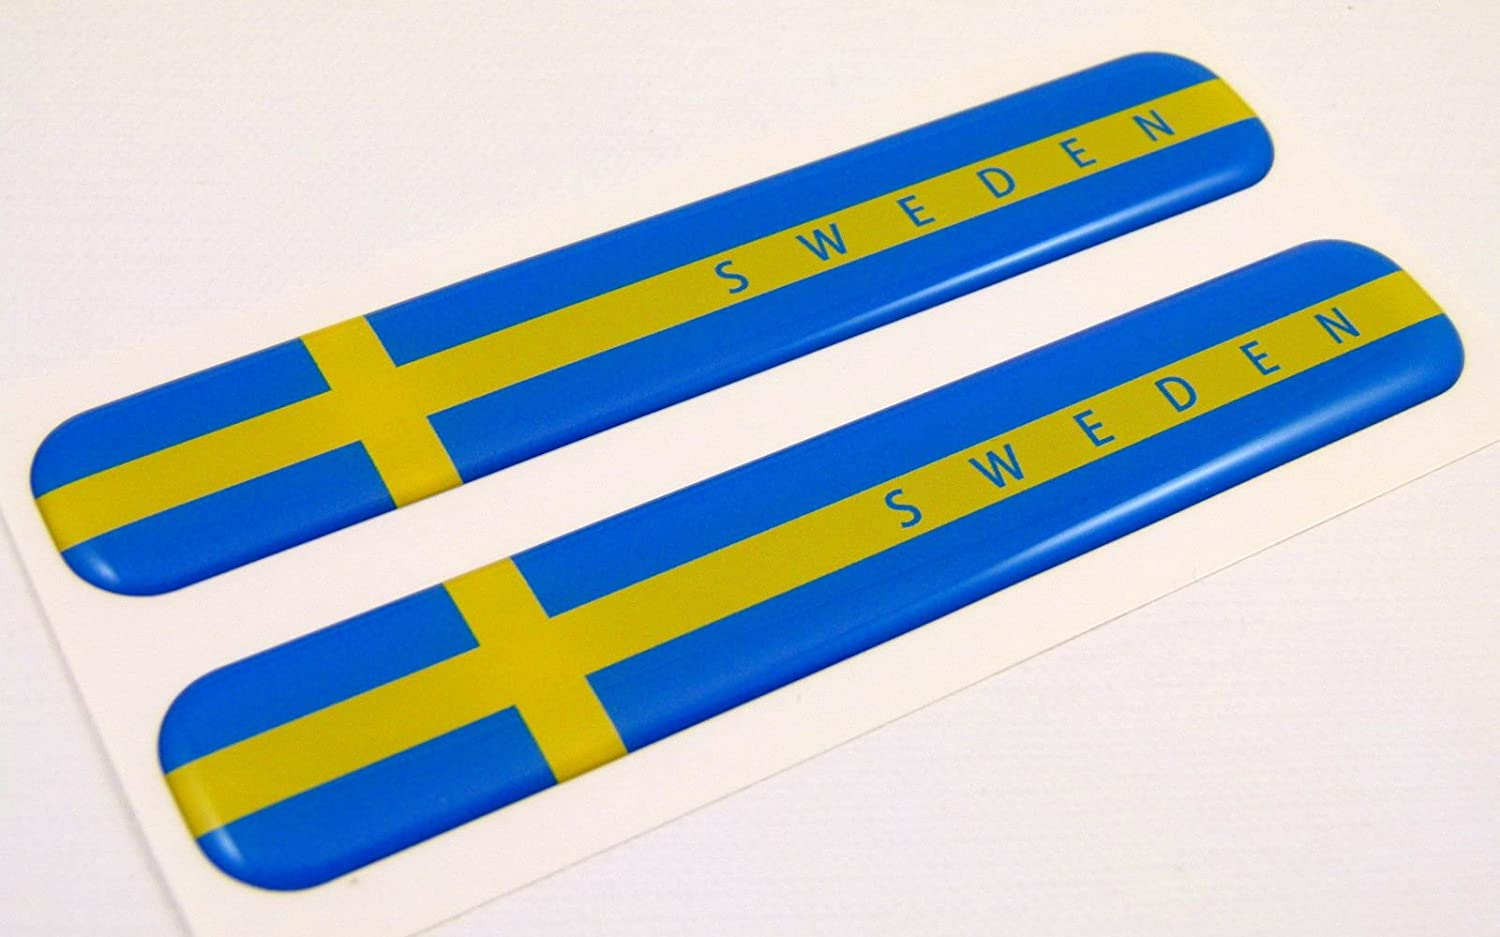 Car Chrome Decals Sweden Swedish Flag Domed Decal Emblem Resin car stickers 5x 0.82 2pc